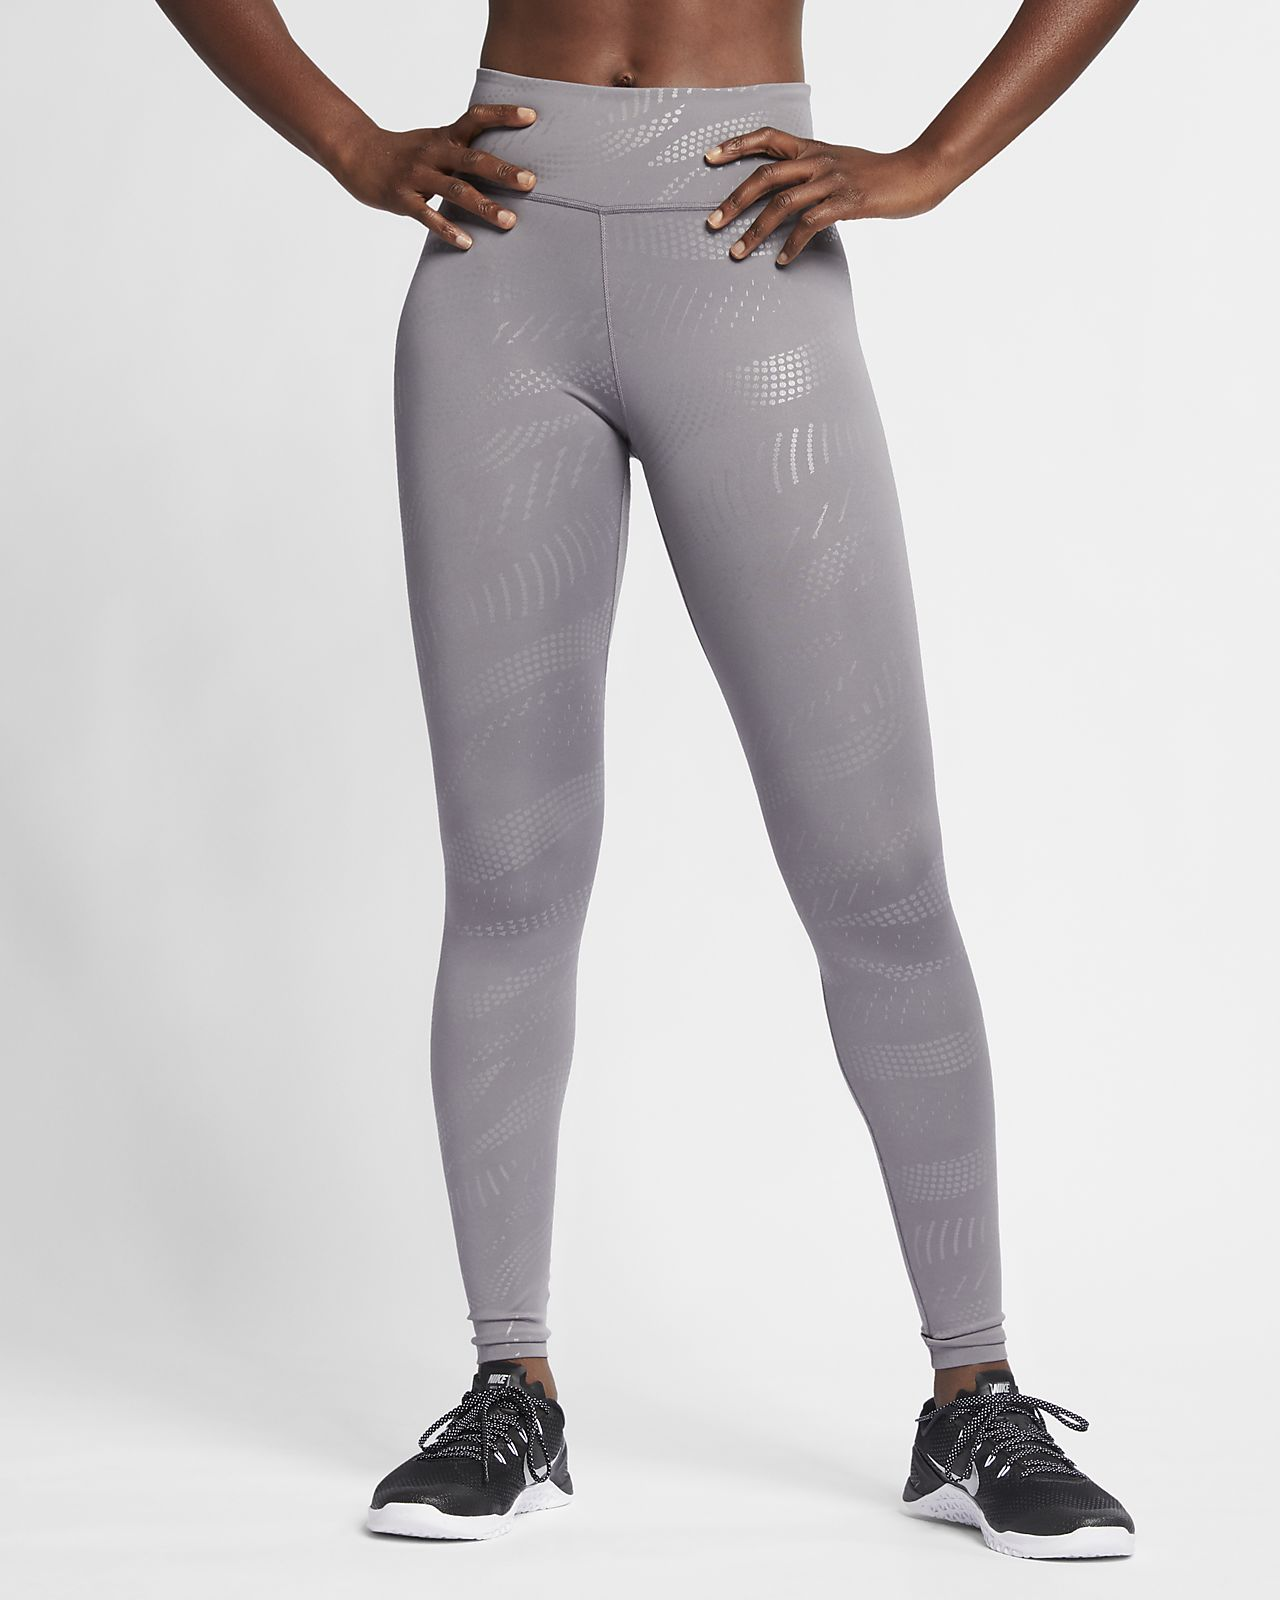 681767a076 Nike One Women s Printed Tights. Nike.com EG